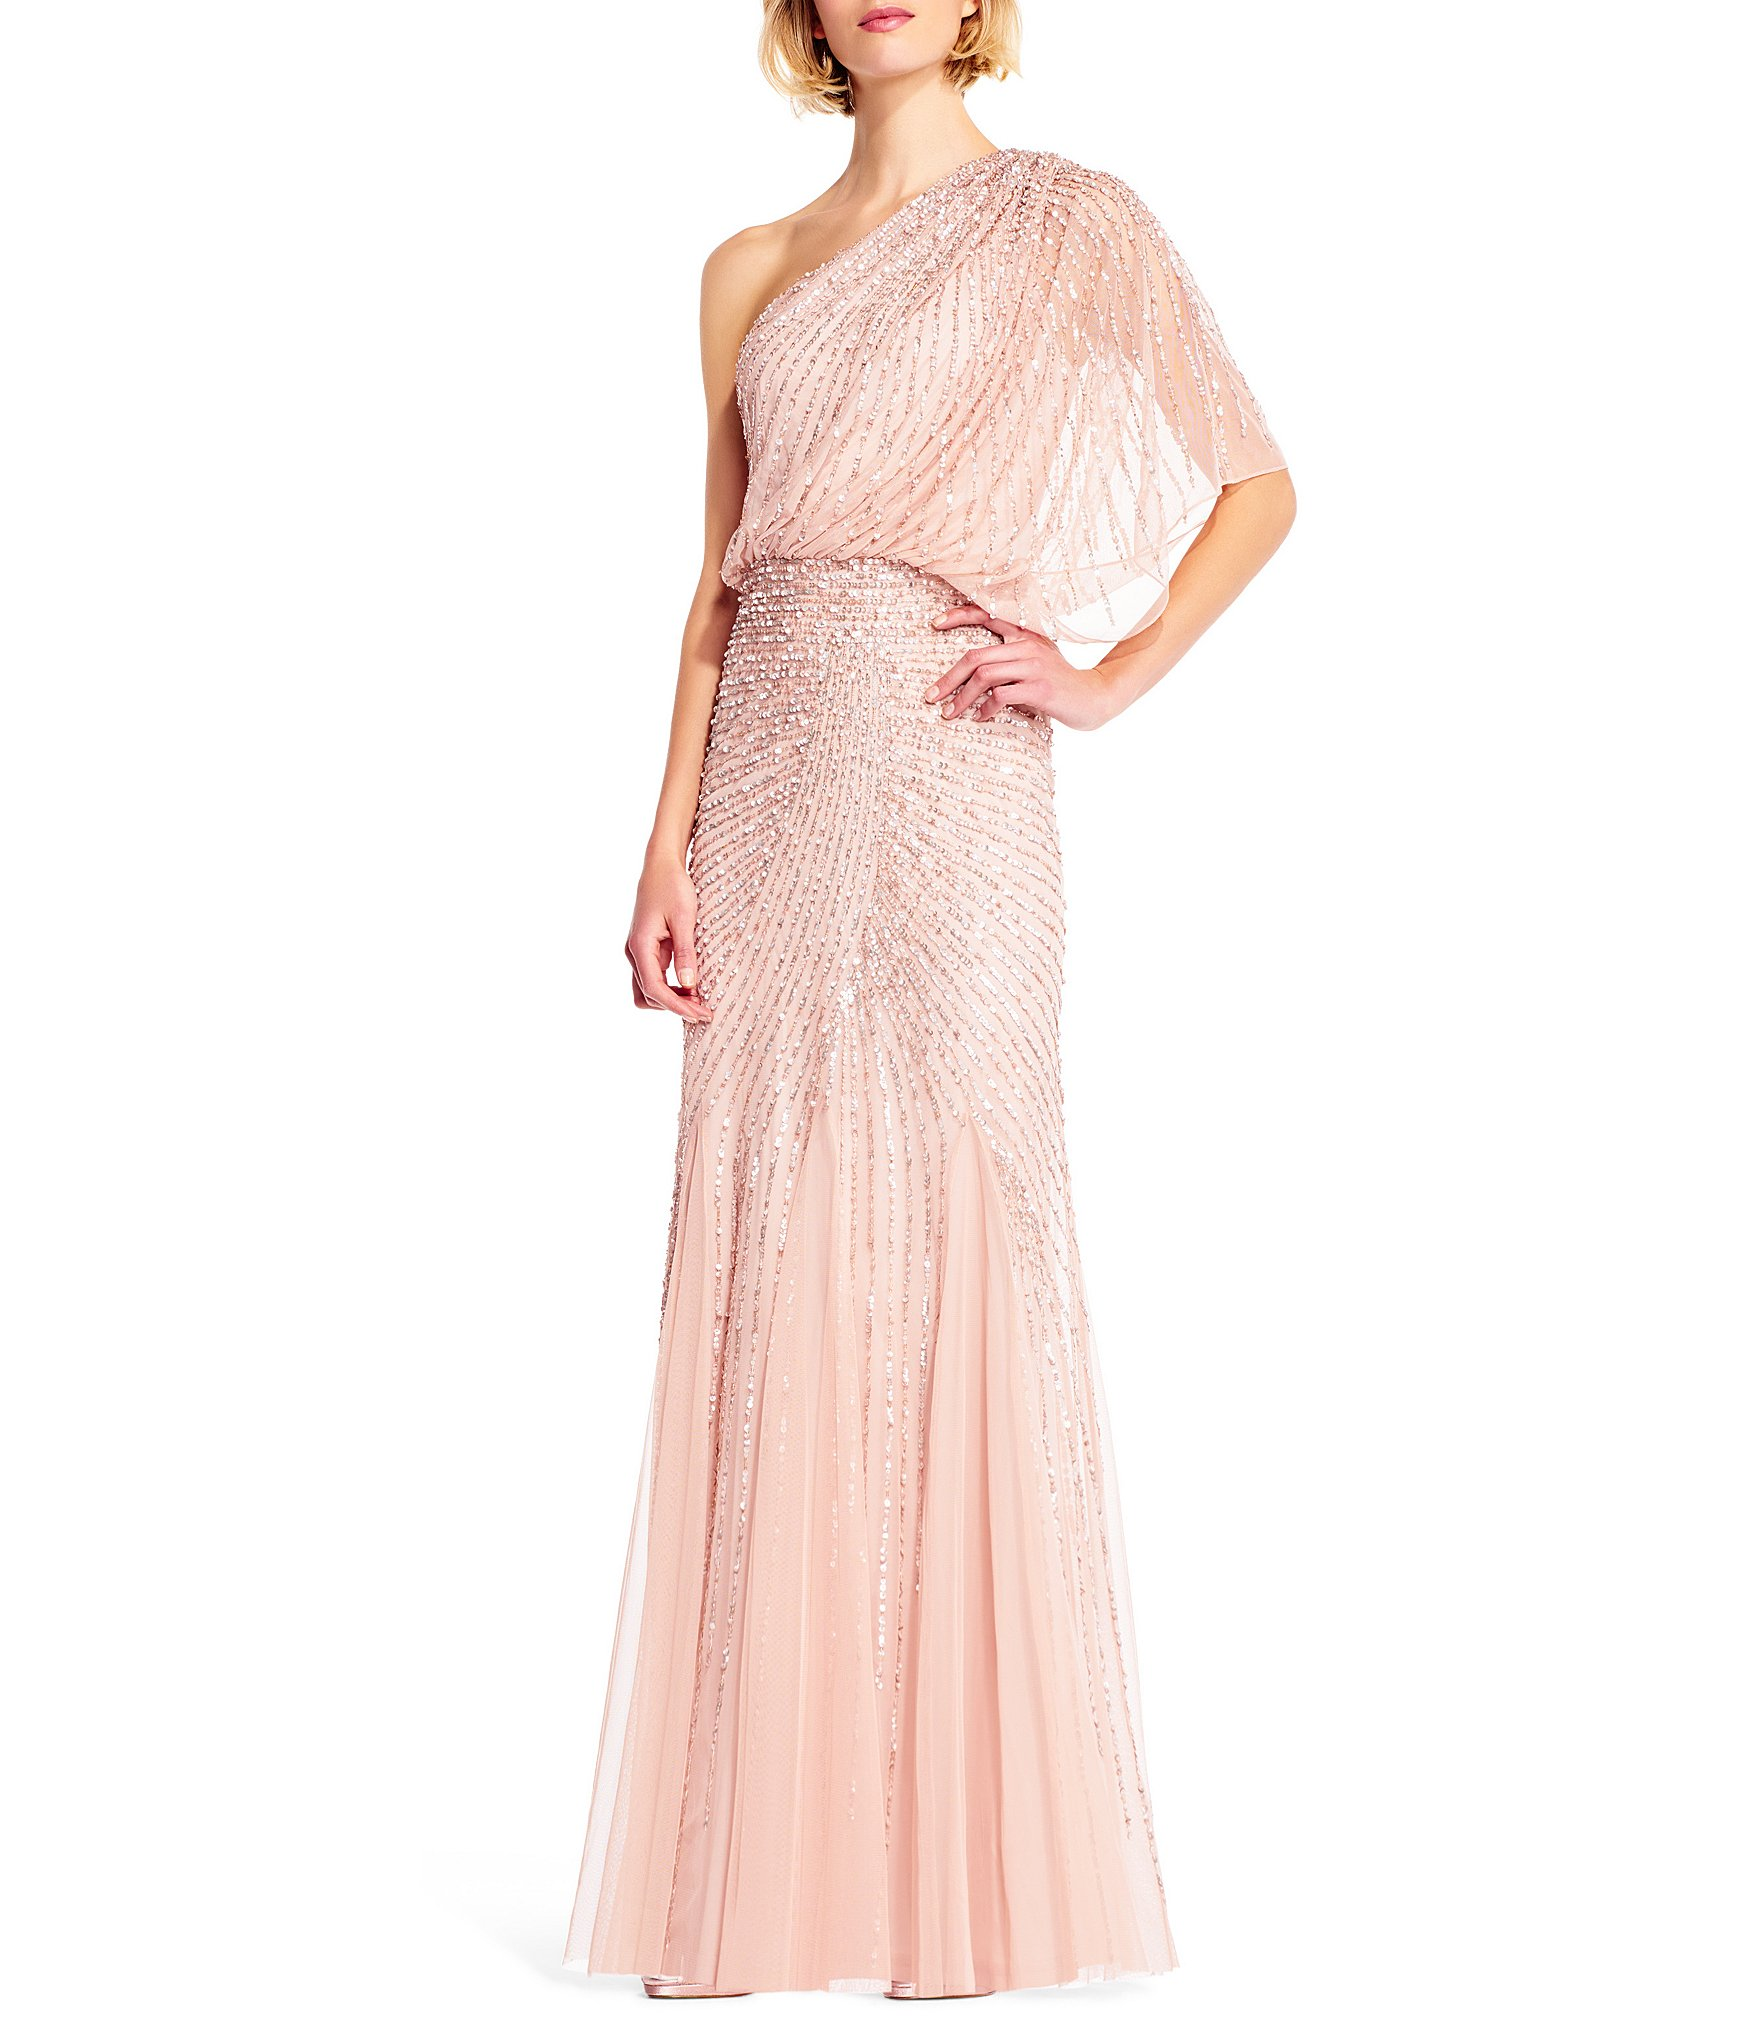 Adrianna Papell One Shoulder Beaded Blouson Gown | Dillards